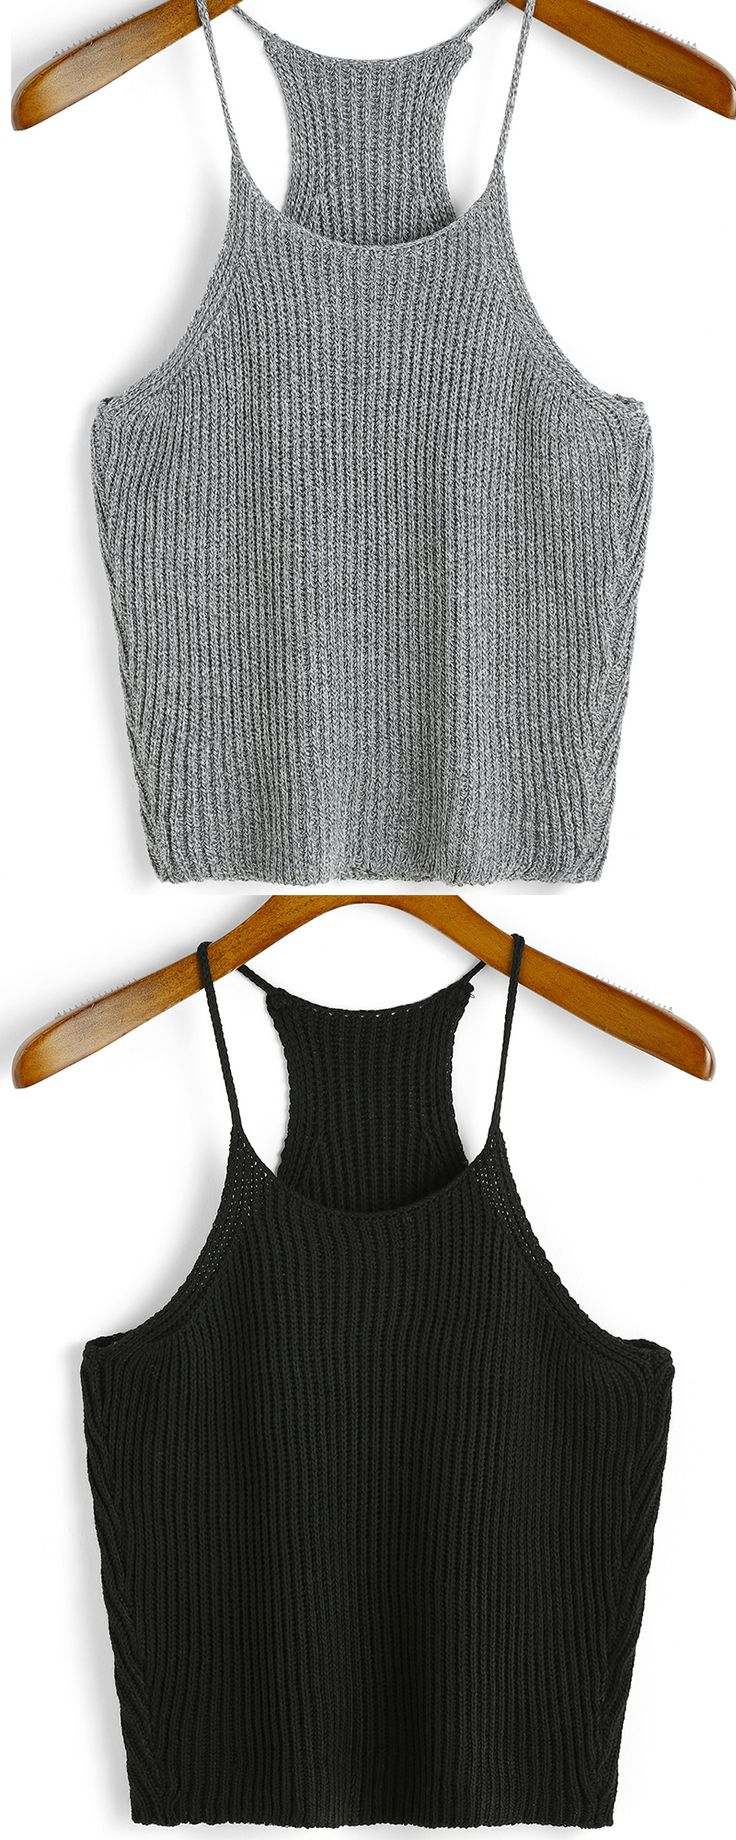 Super soft strap knit cami tops at romwe.com. Just love both of two colors!